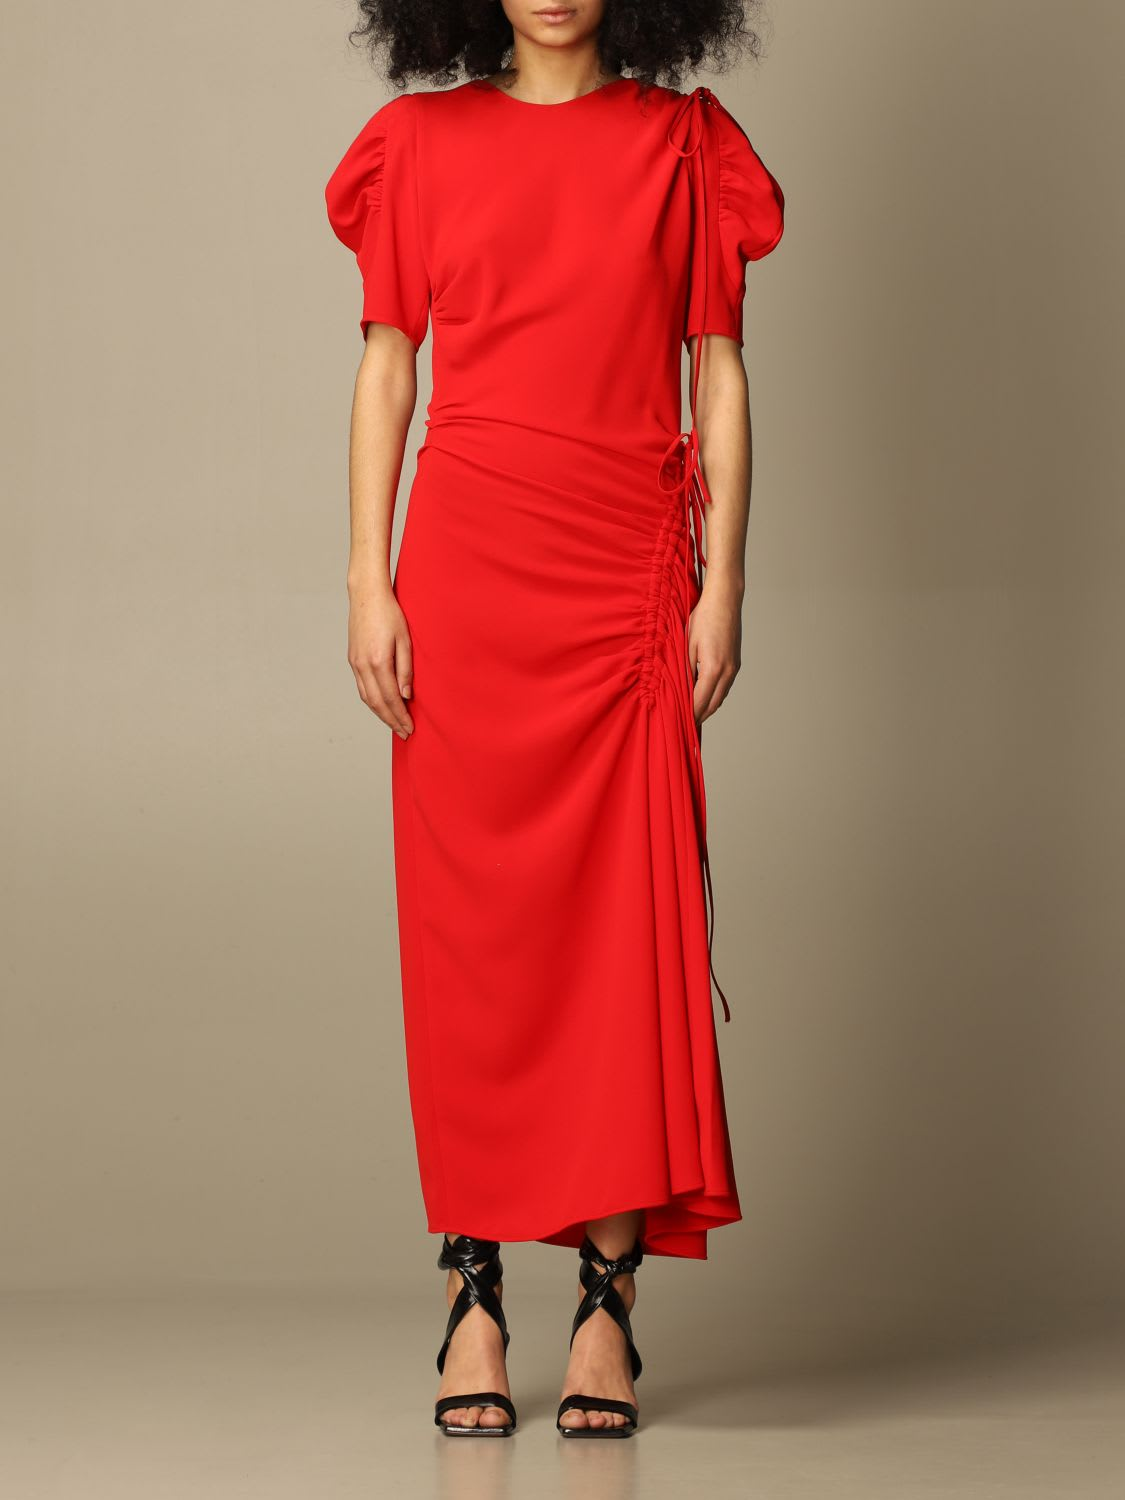 Buy N.21 N? 21 Dress N ° 21 Midi Dress With Gathered Elements online, shop N.21 with free shipping